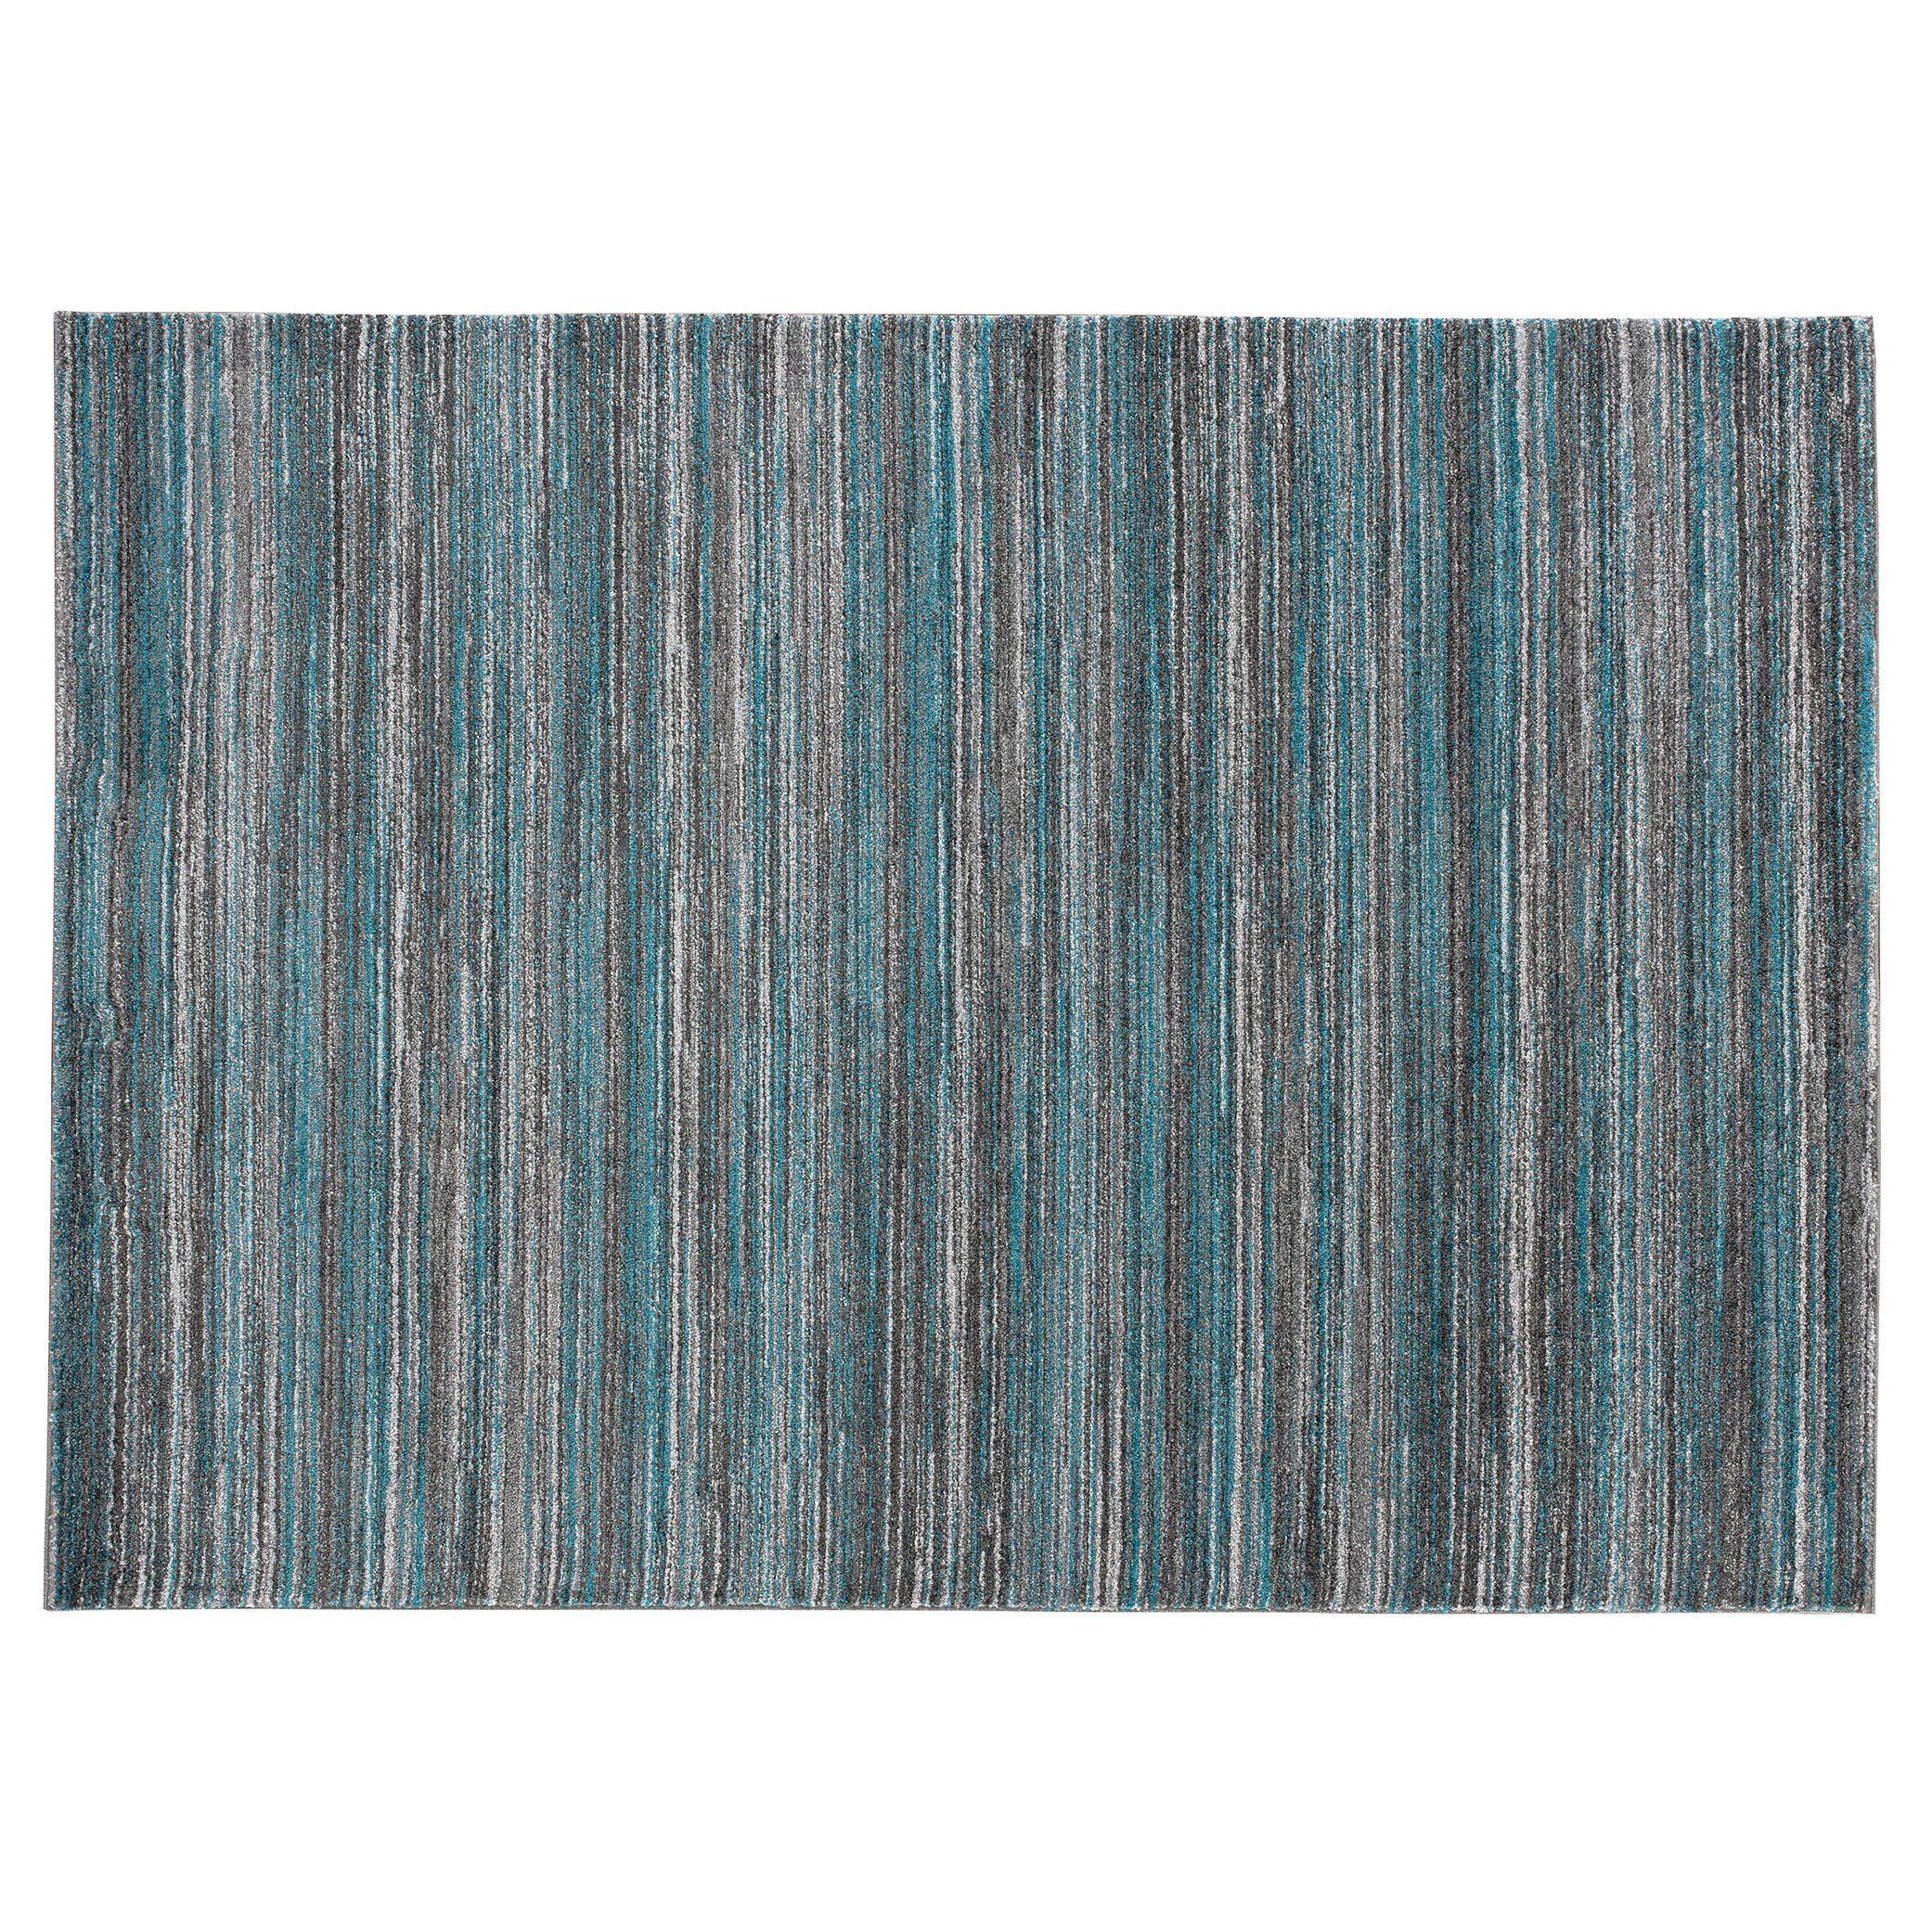 Balta norwell gray blue area rug wayfair for 10x10 living room rugs